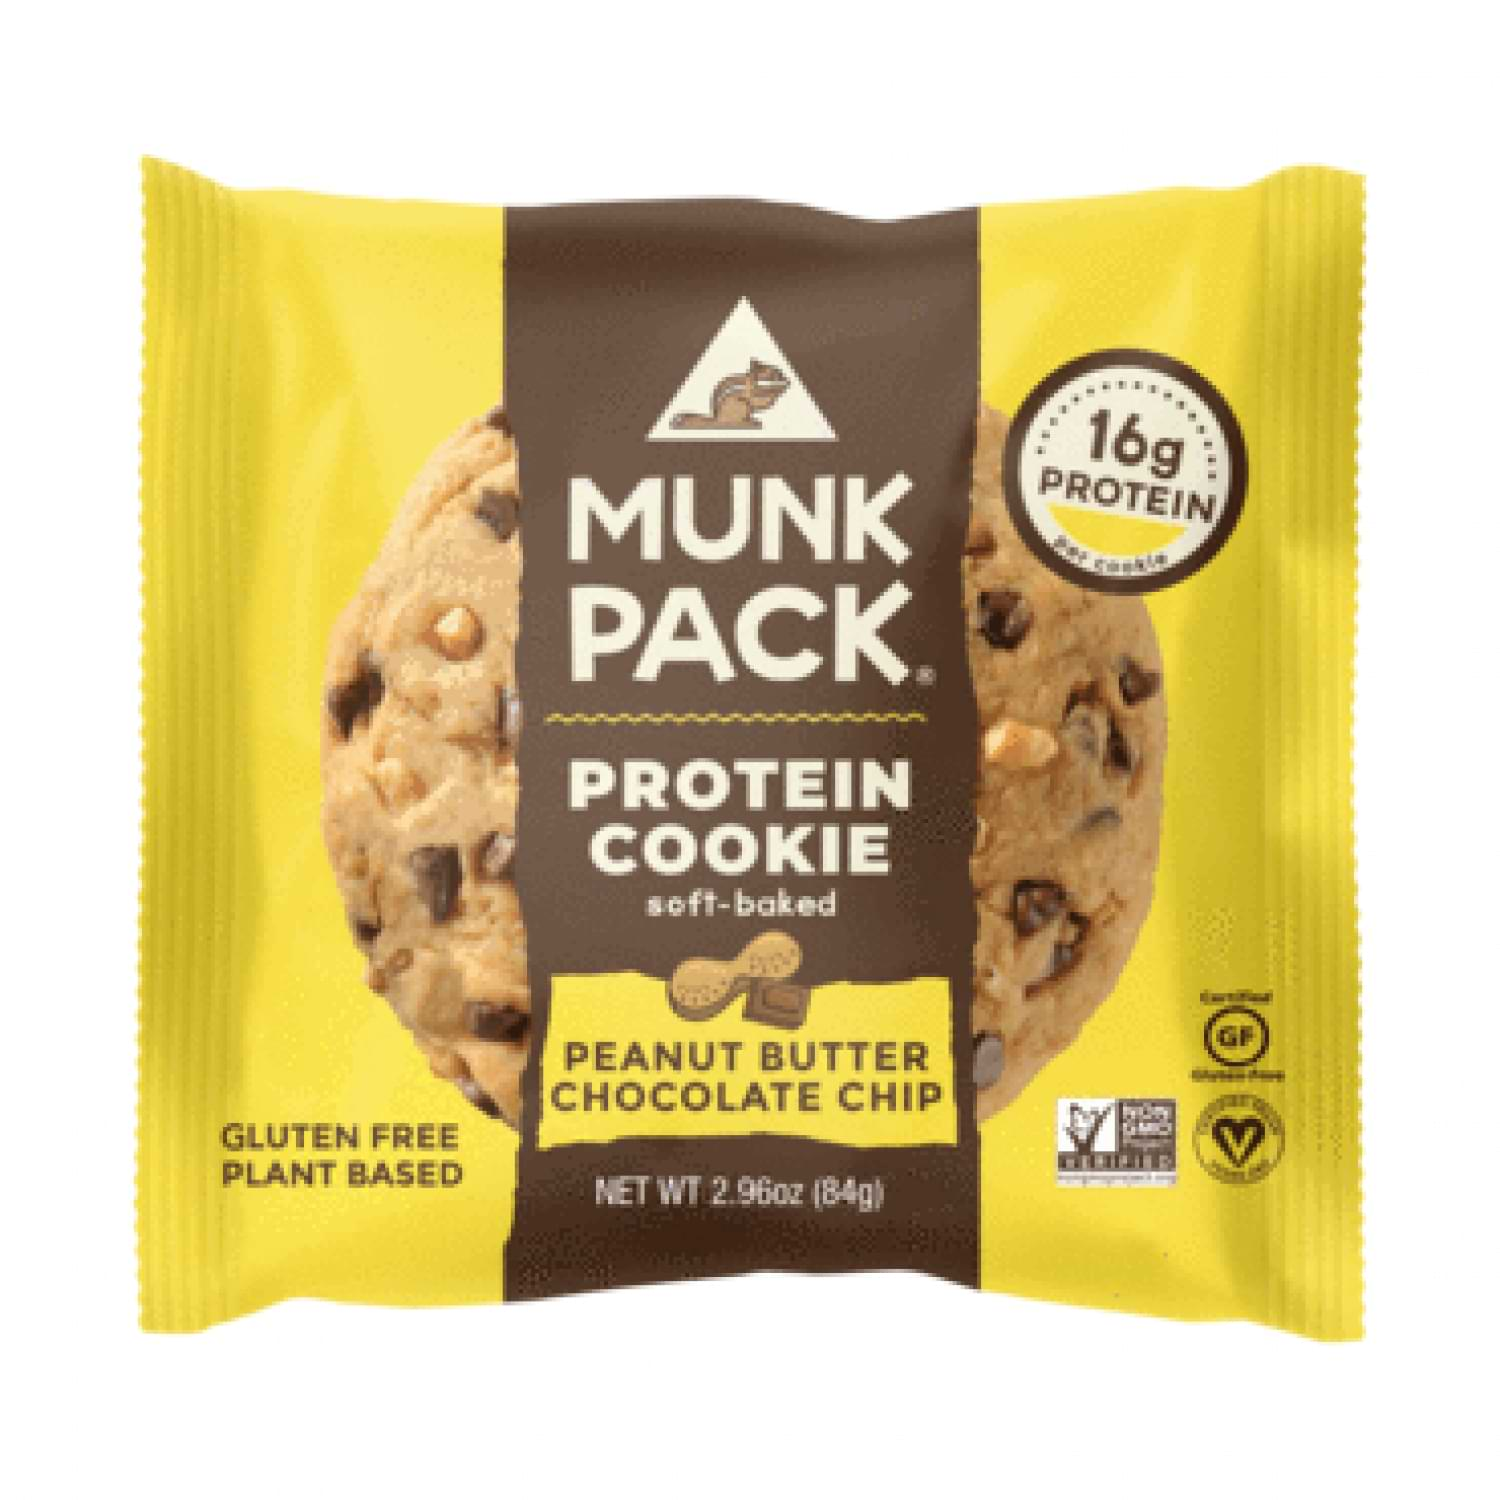 Topmost Benefits Of Consuming Plant Based Protein Cookies